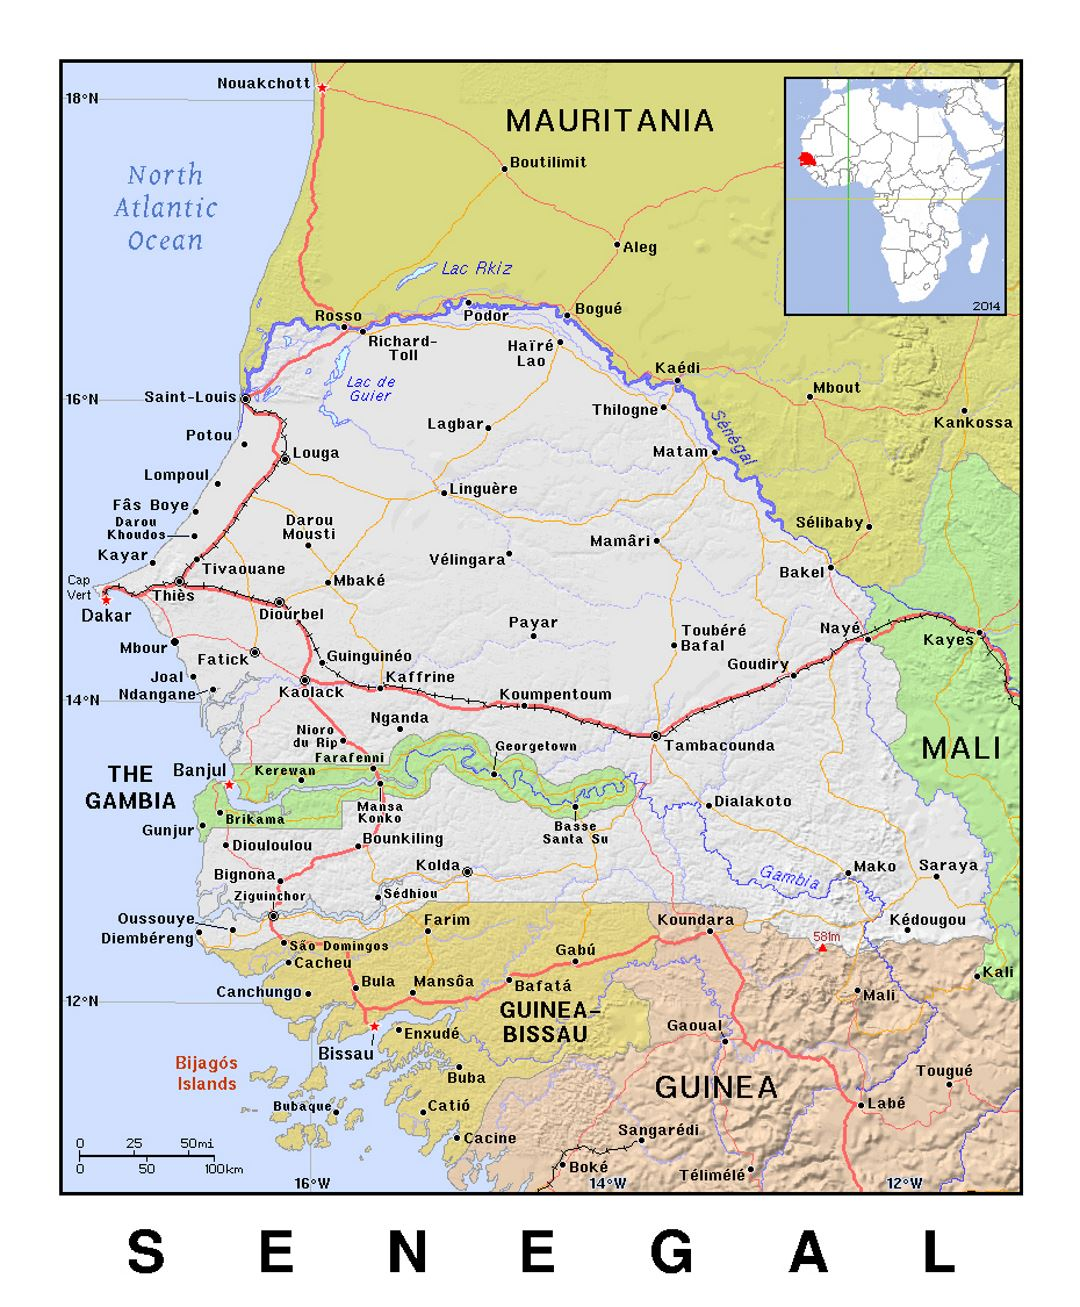 Detailed political map of Senegal with relief